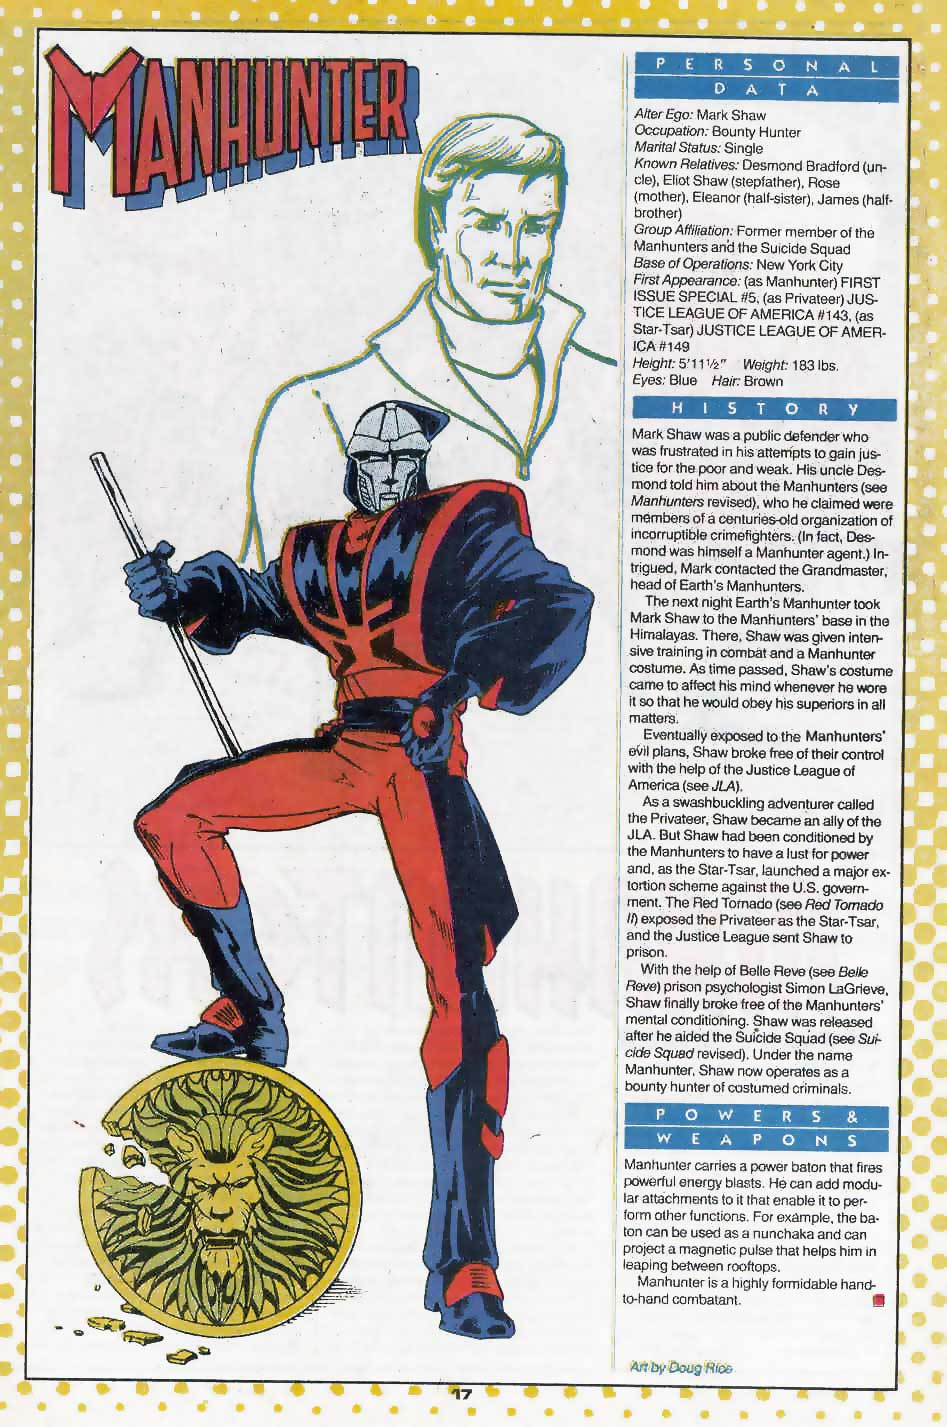 Who's Who Update 88 #2 Manhunter by Doug Rice